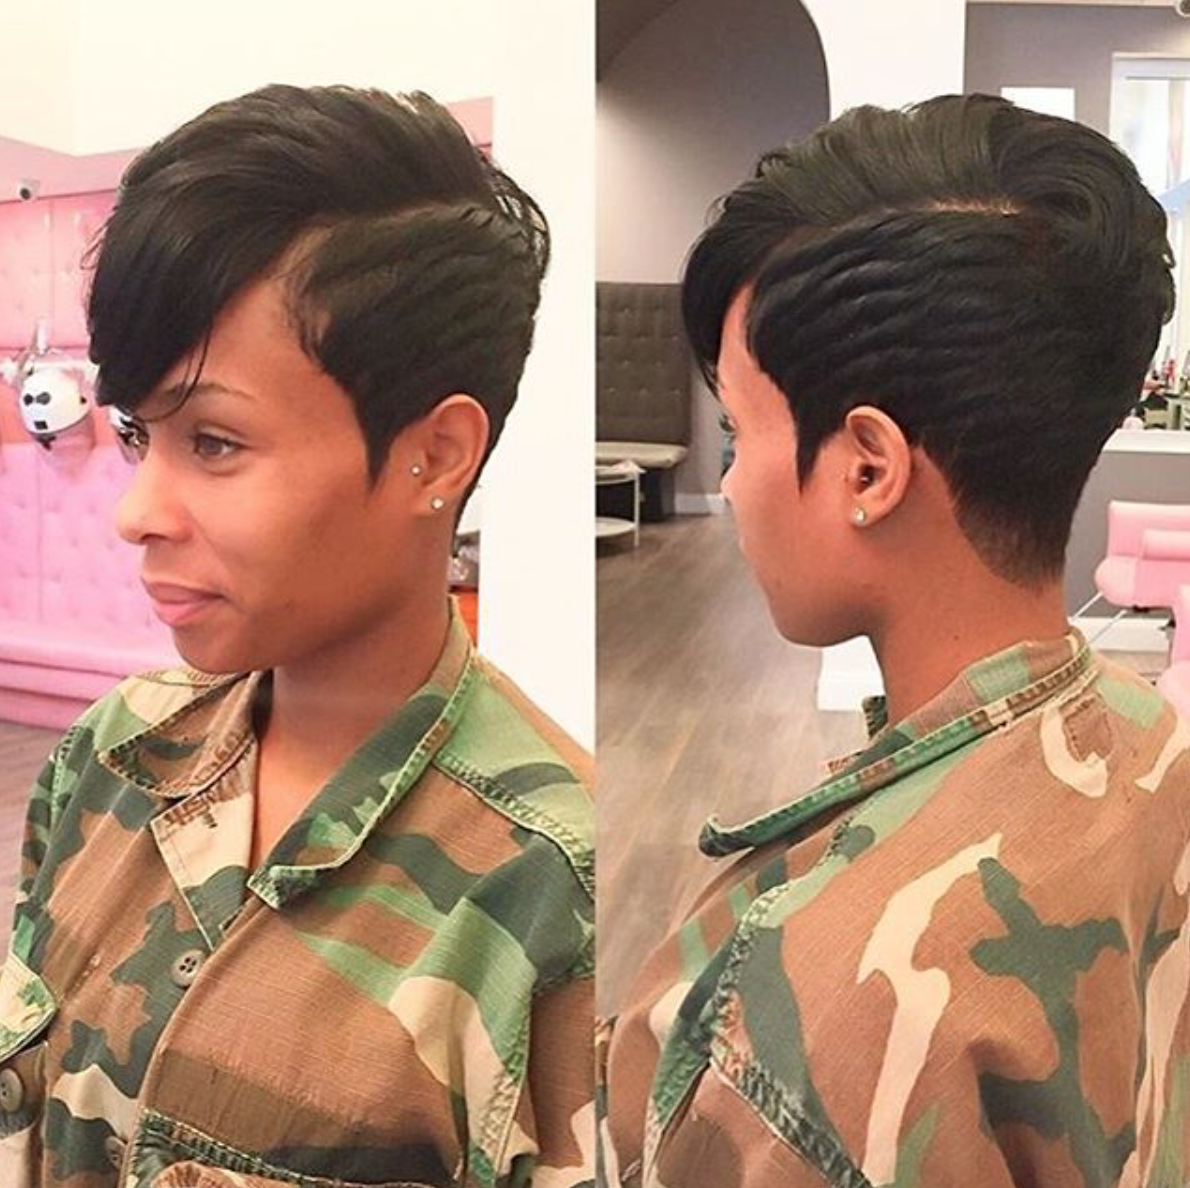 short hair styles for black girls flawless thejaechristian black hair information 2284 | Screen Shot 2017 01 02 at 11.06.53 AM